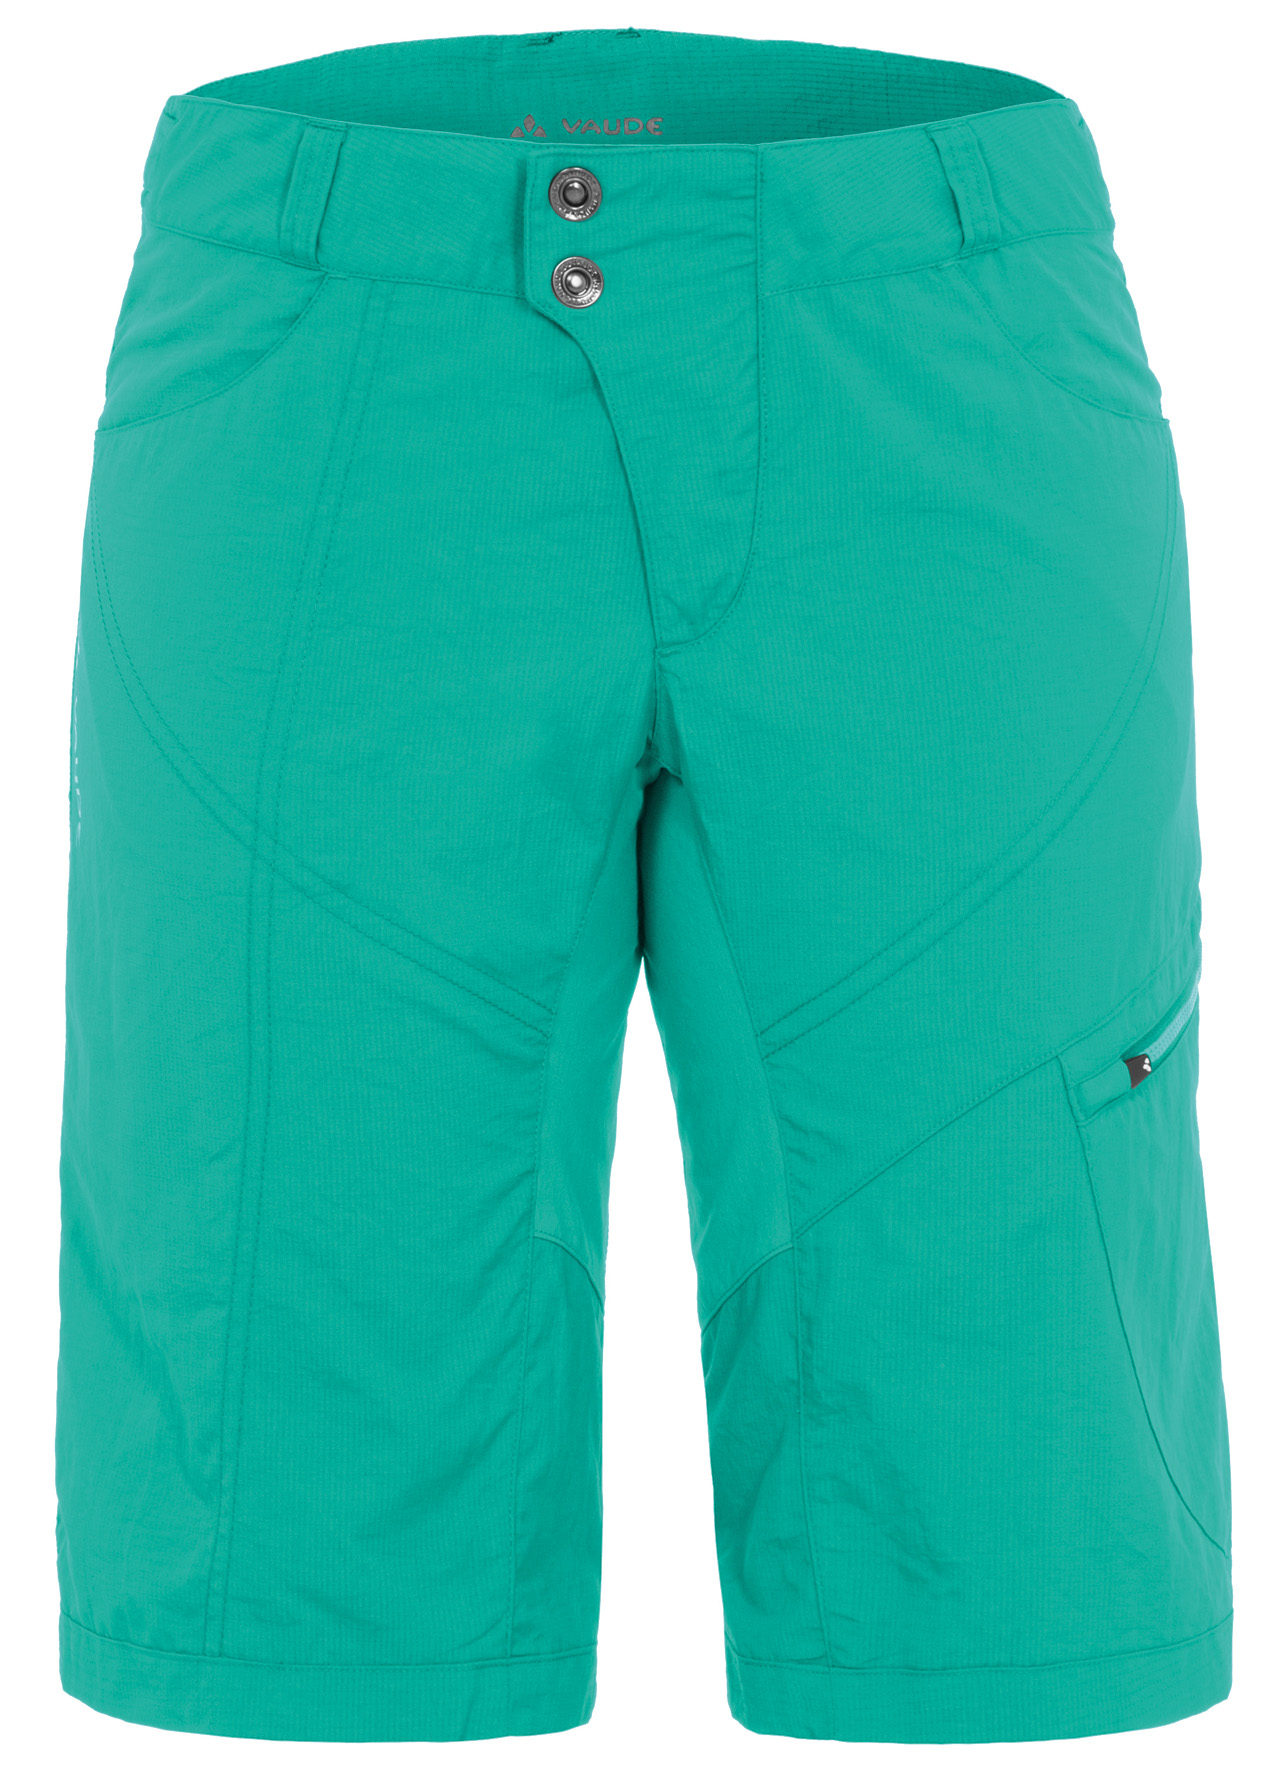 Women´s Tamaro Shorts lotus green Größe 42 - schneider-sports